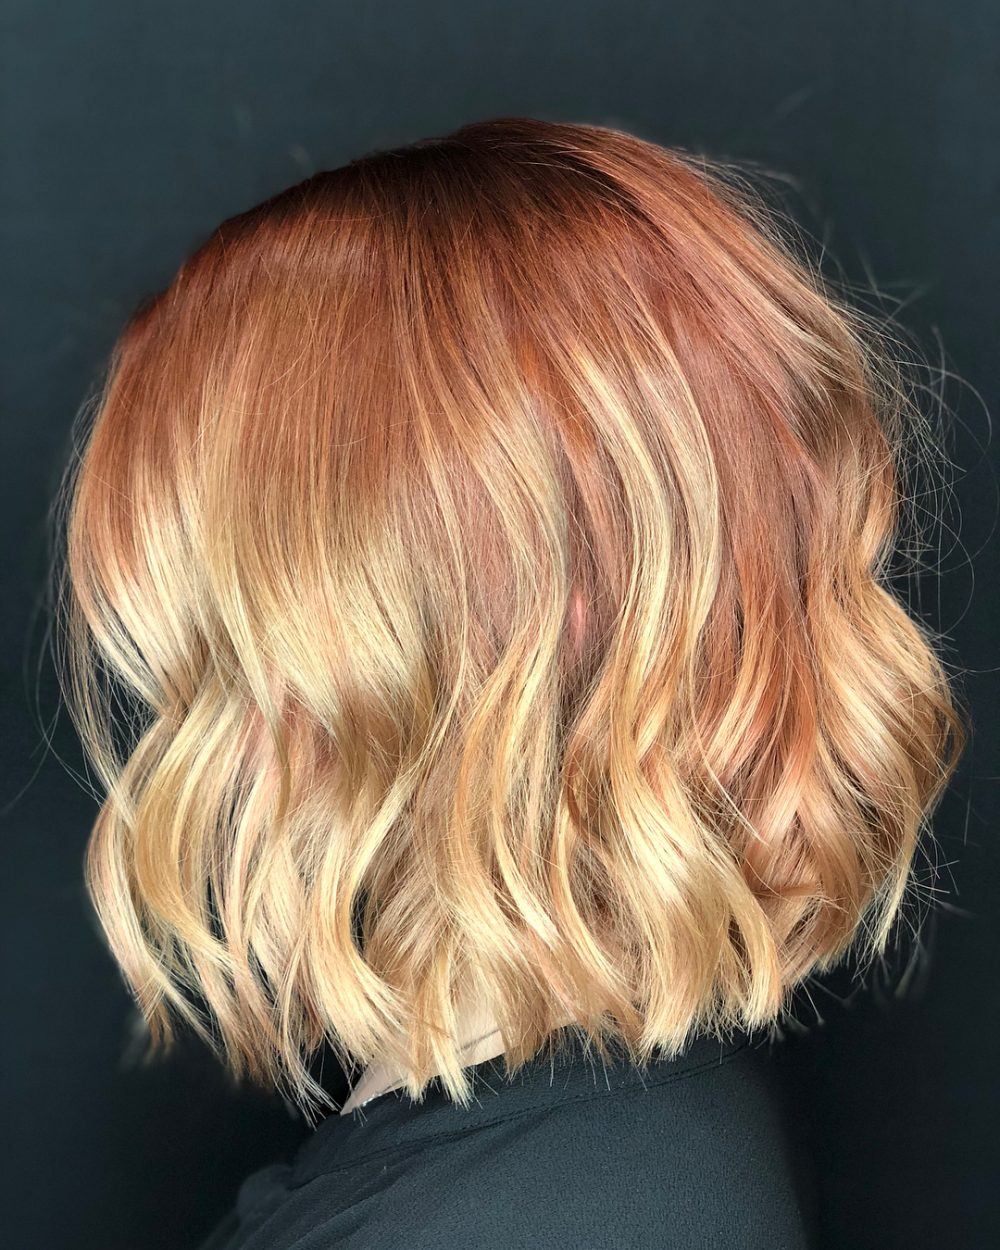 18 Best Strawberry Blonde Hair Color Ideas Pictures For 2021